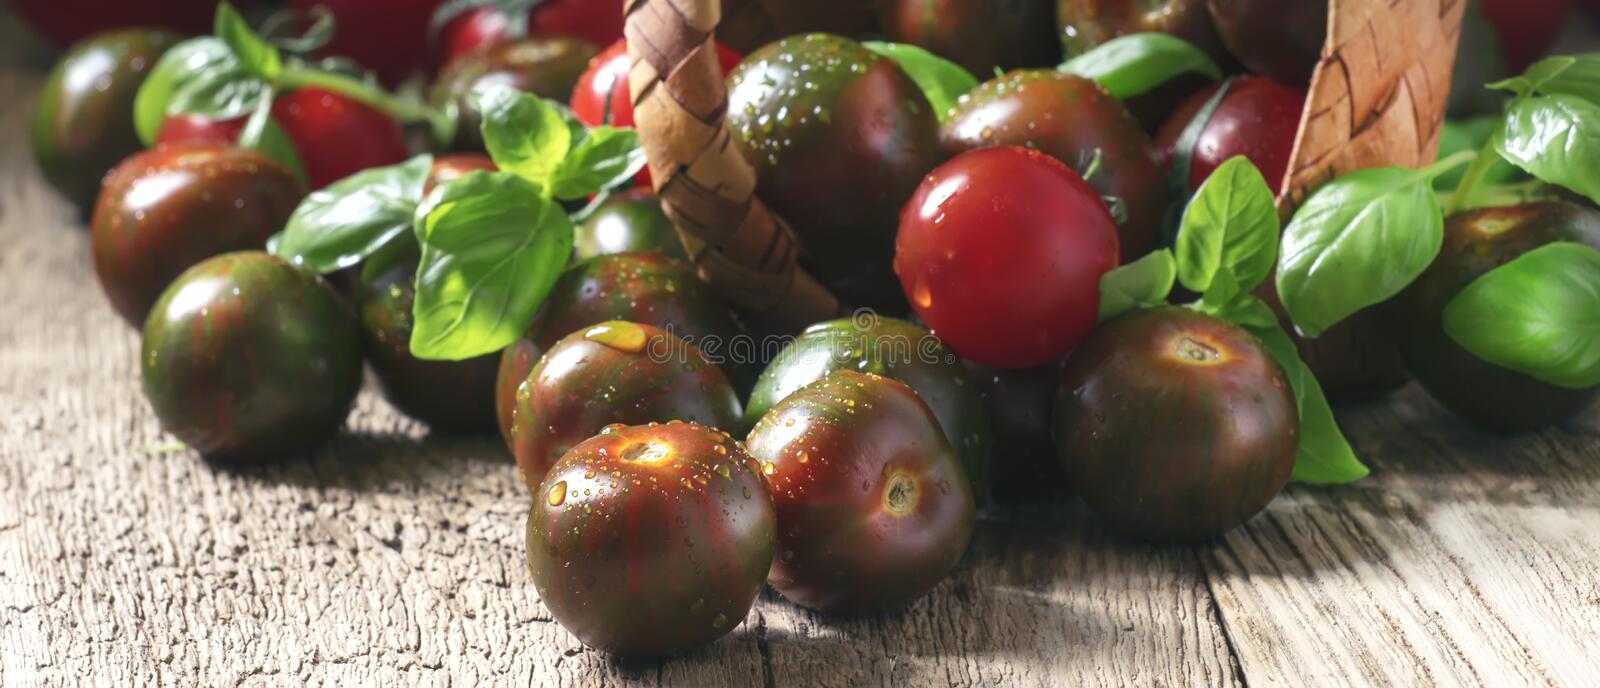 Striped black tomatoes with green basil spill out of basket, vintage wooden table, selective focus. Striped black tomatoes with green basil spill out of basket royalty free stock images